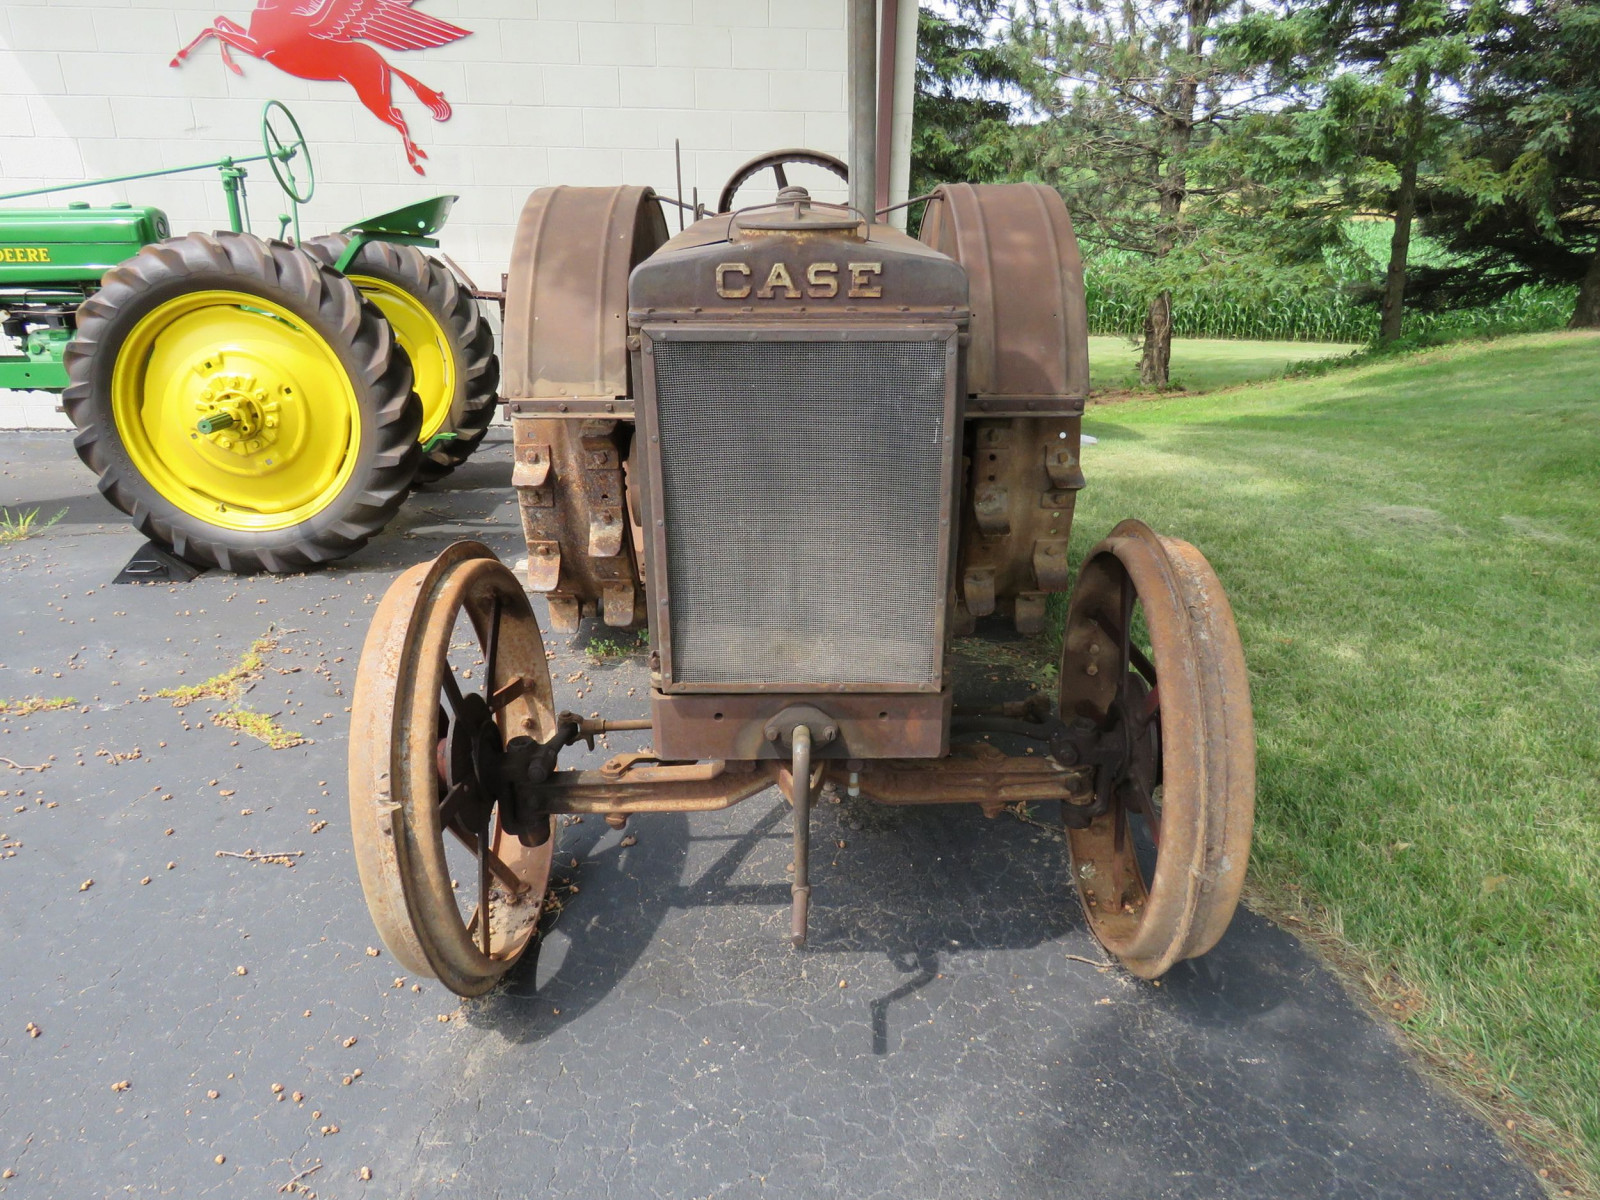 1935 Case C Tractor - Image 2